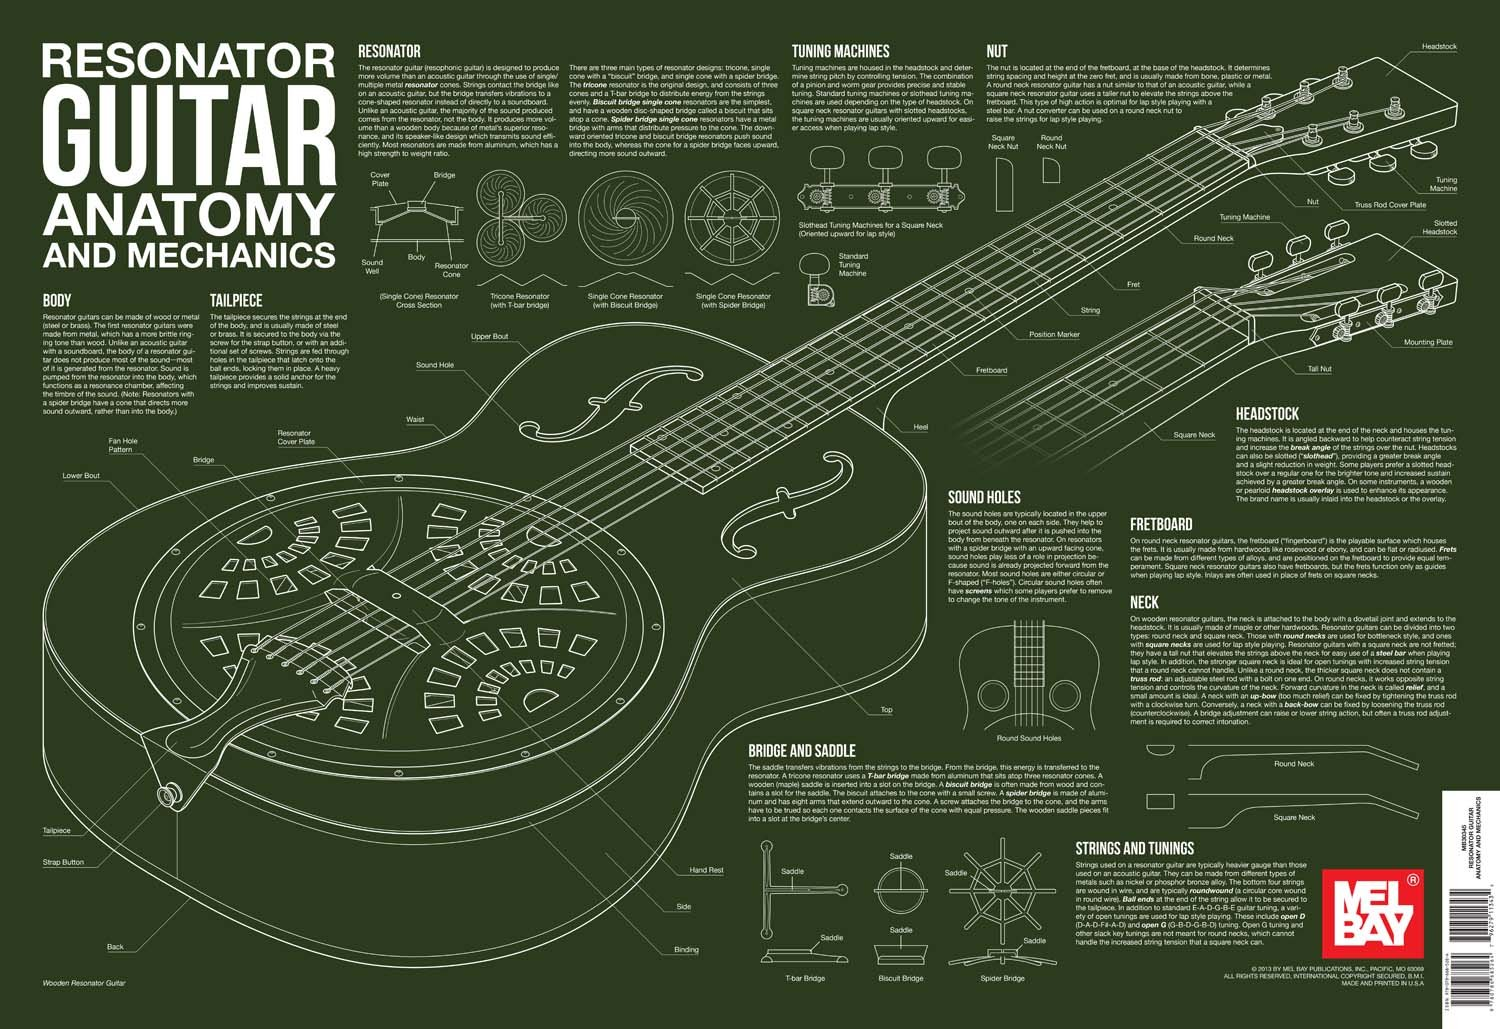 Resonator Guitar Anatomy and Mechanics Wall Chart (Anatomy Wall ...